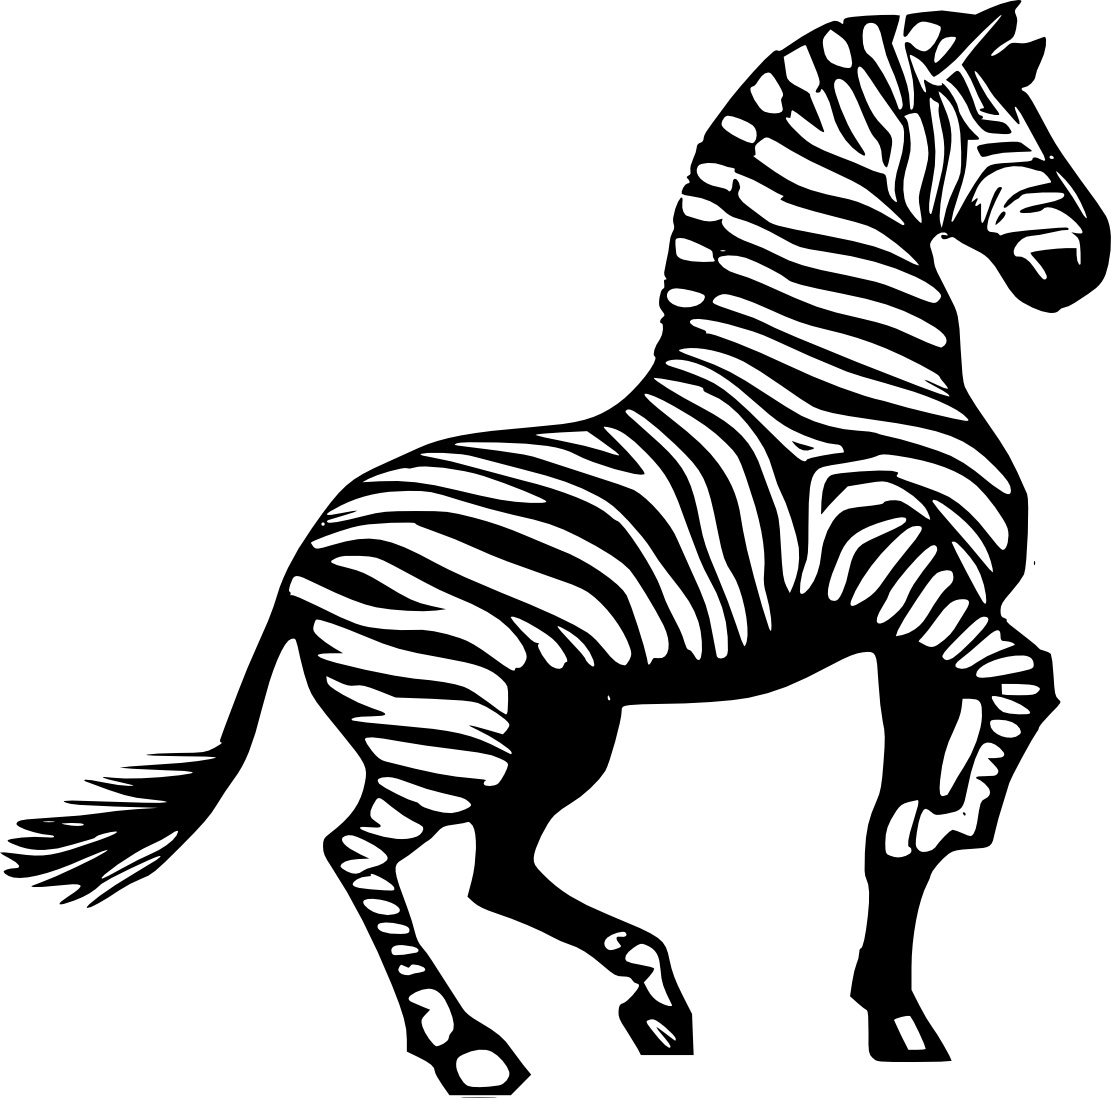 Emejing Zebra Printable Coloring Pages Pictures Printable